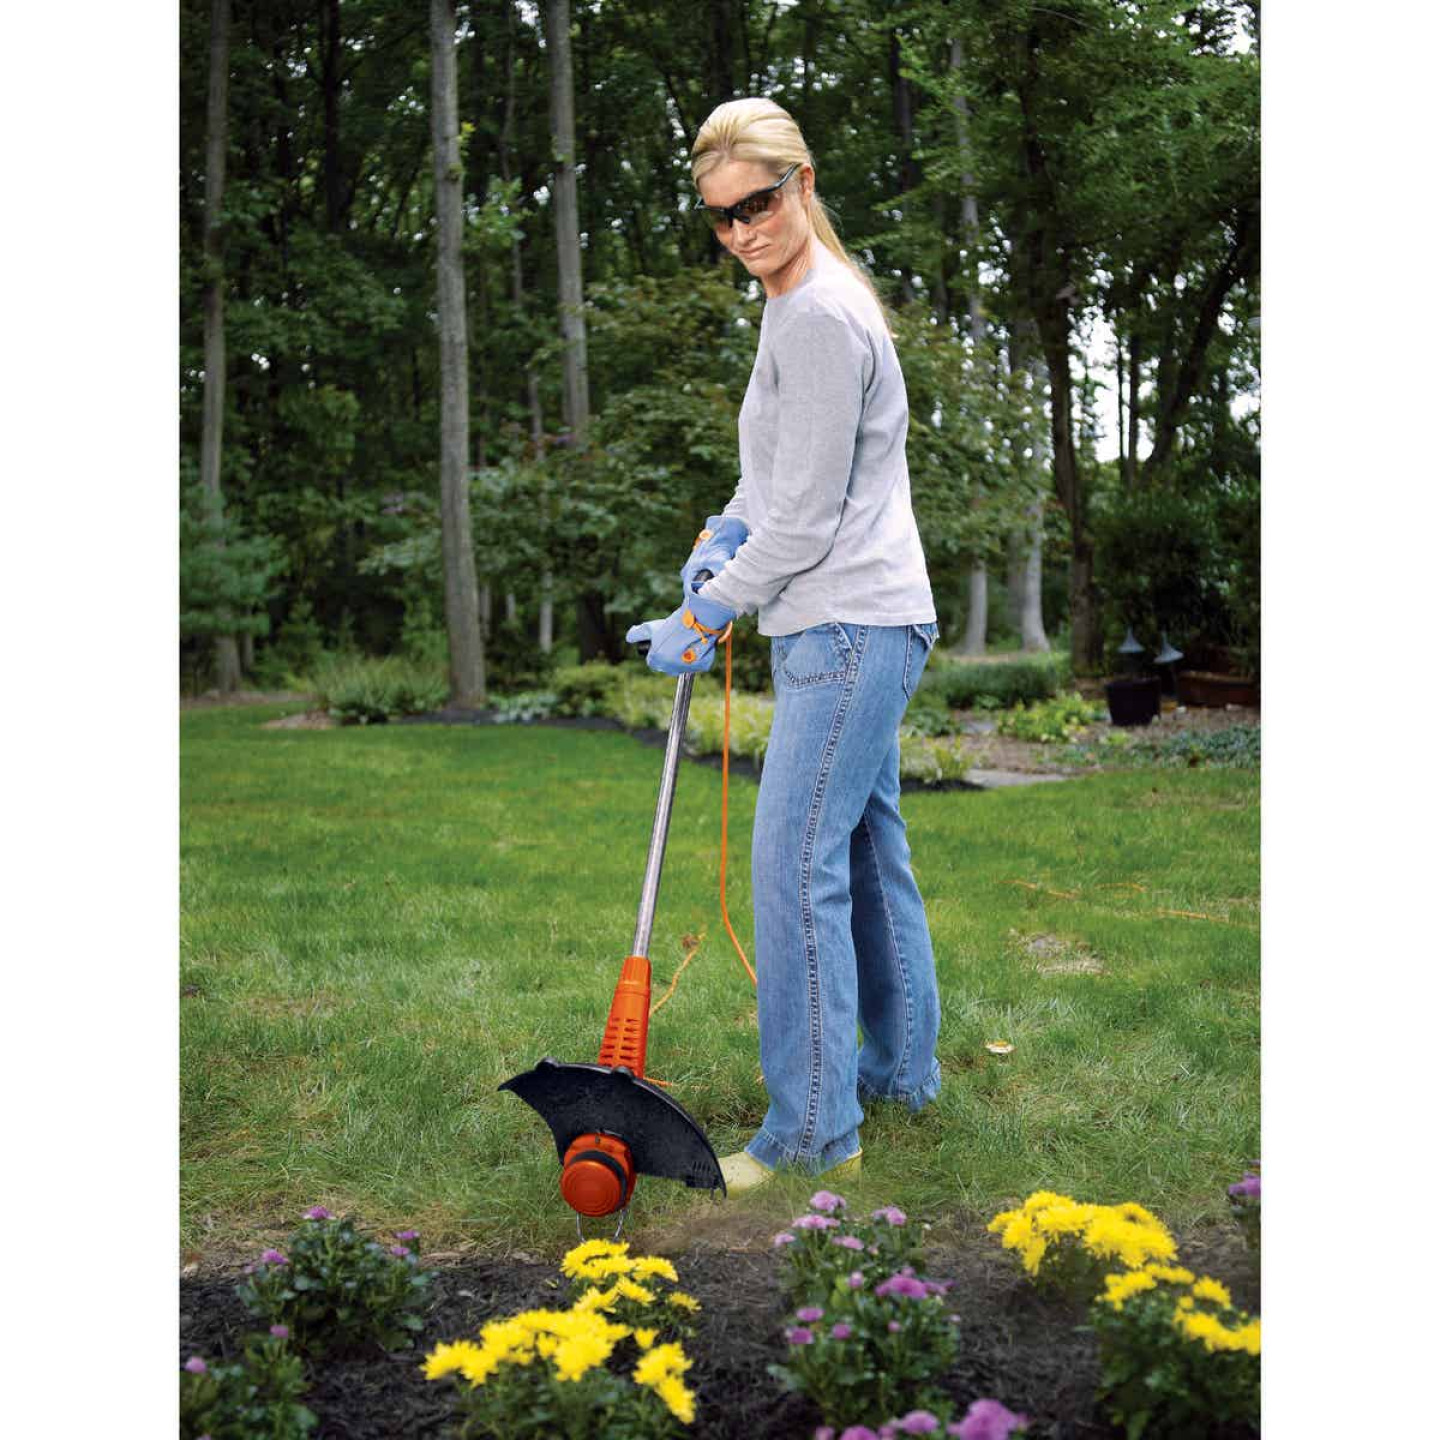 Black & Decker 13 In. 4.4-Amp Straight Shaft Corded Electric String Trimmer Edger Image 6